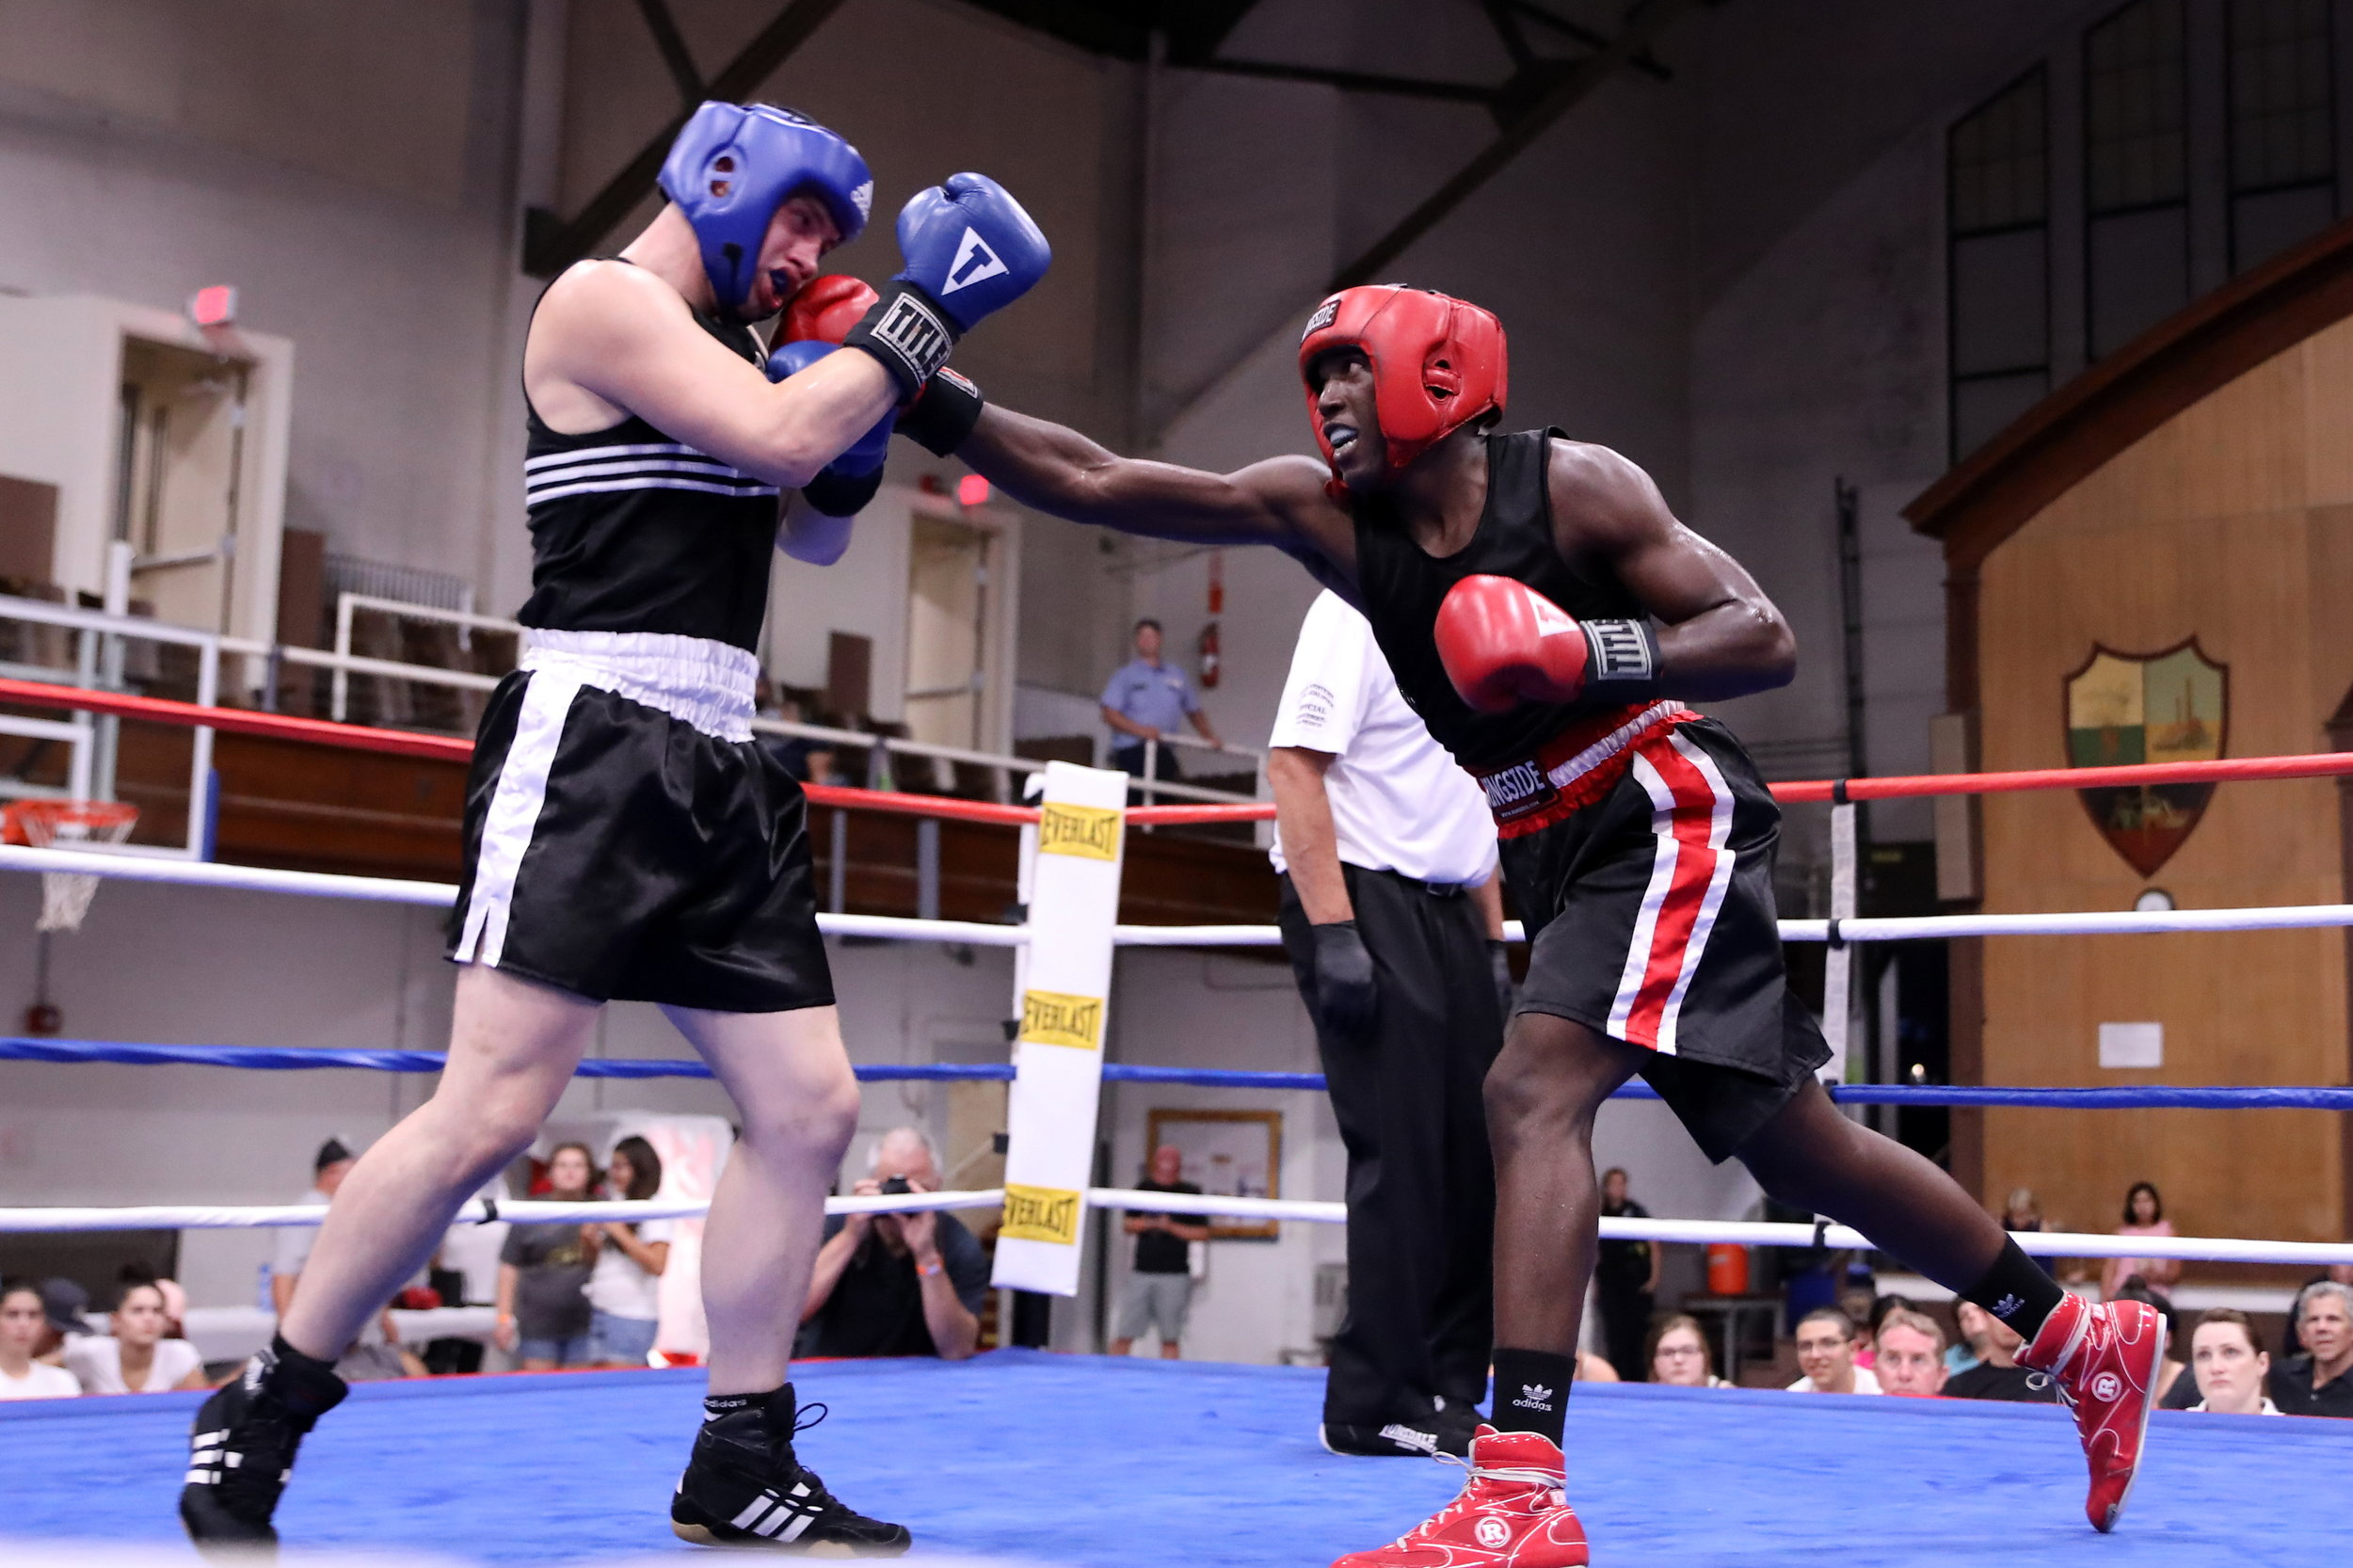 Portland Boxing Club's Wade Faria (right) and Aaron Waite (left) at Get Gritty in the City in Lewiston, ME on August 3, 2019.  Photo courtesy Kineo Photography.